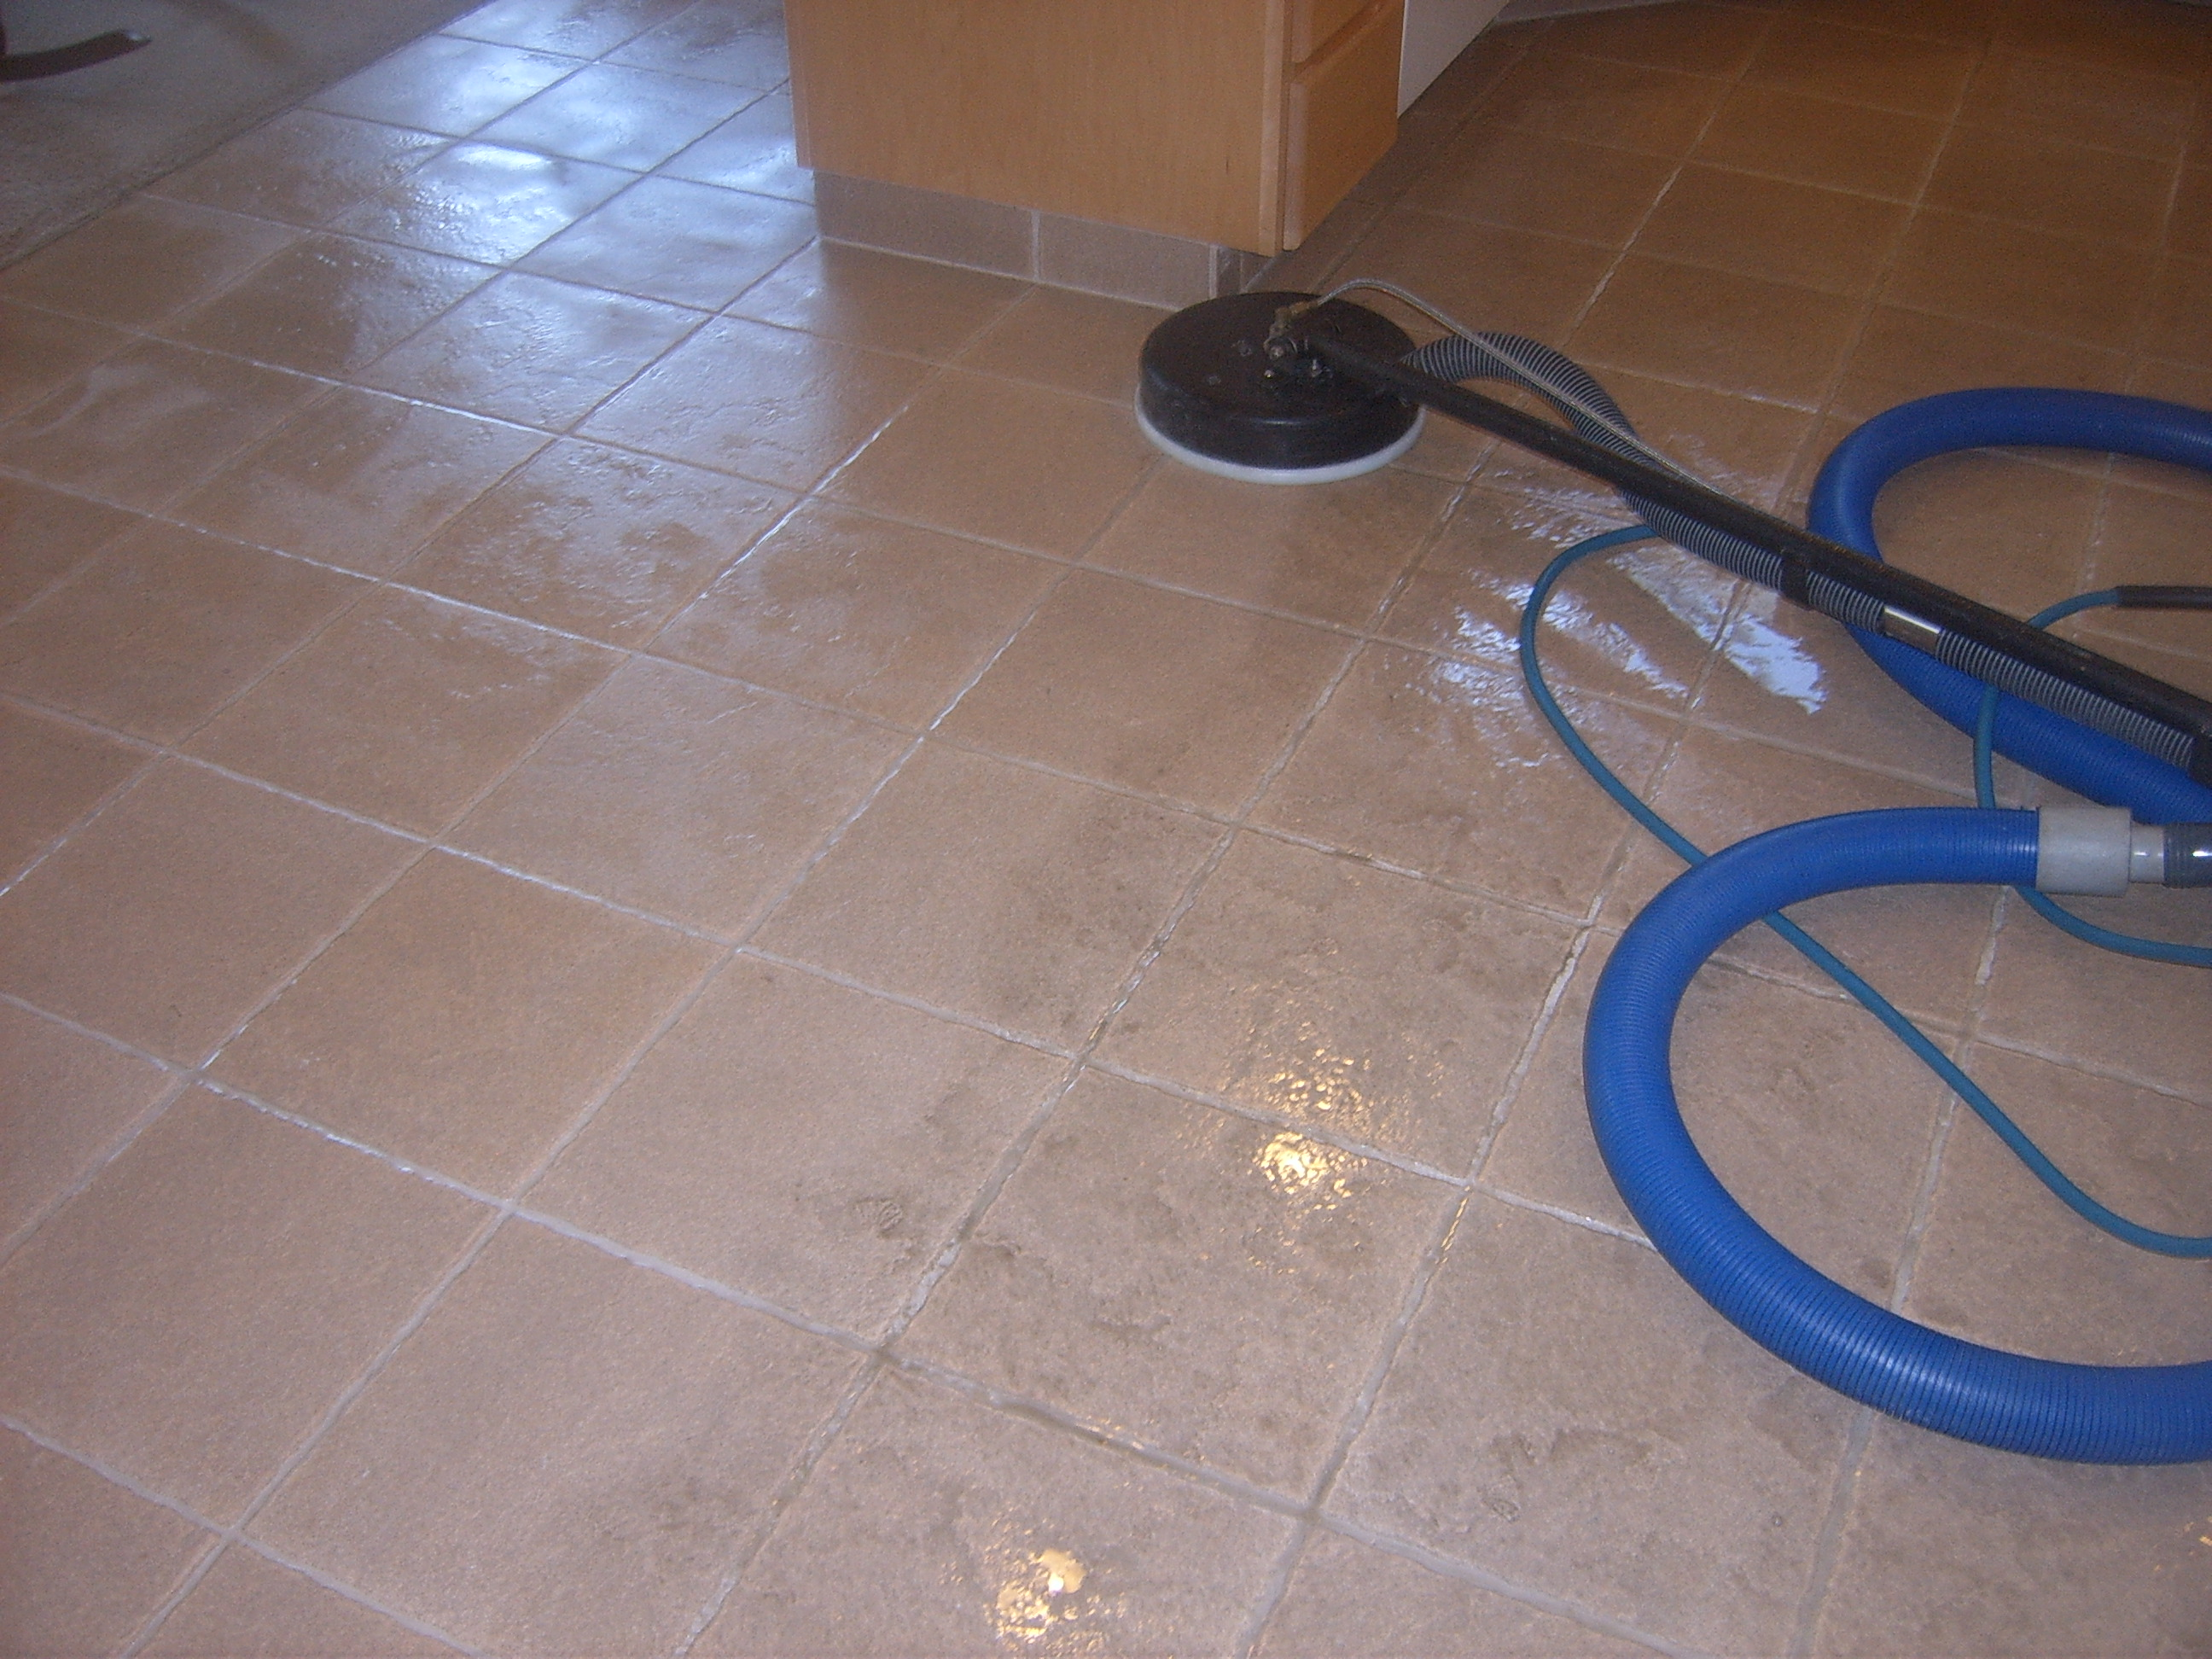 Rainbow Carpet Cleaning Ceramic Tile Grout Cleaning - Best method to clean tile grout